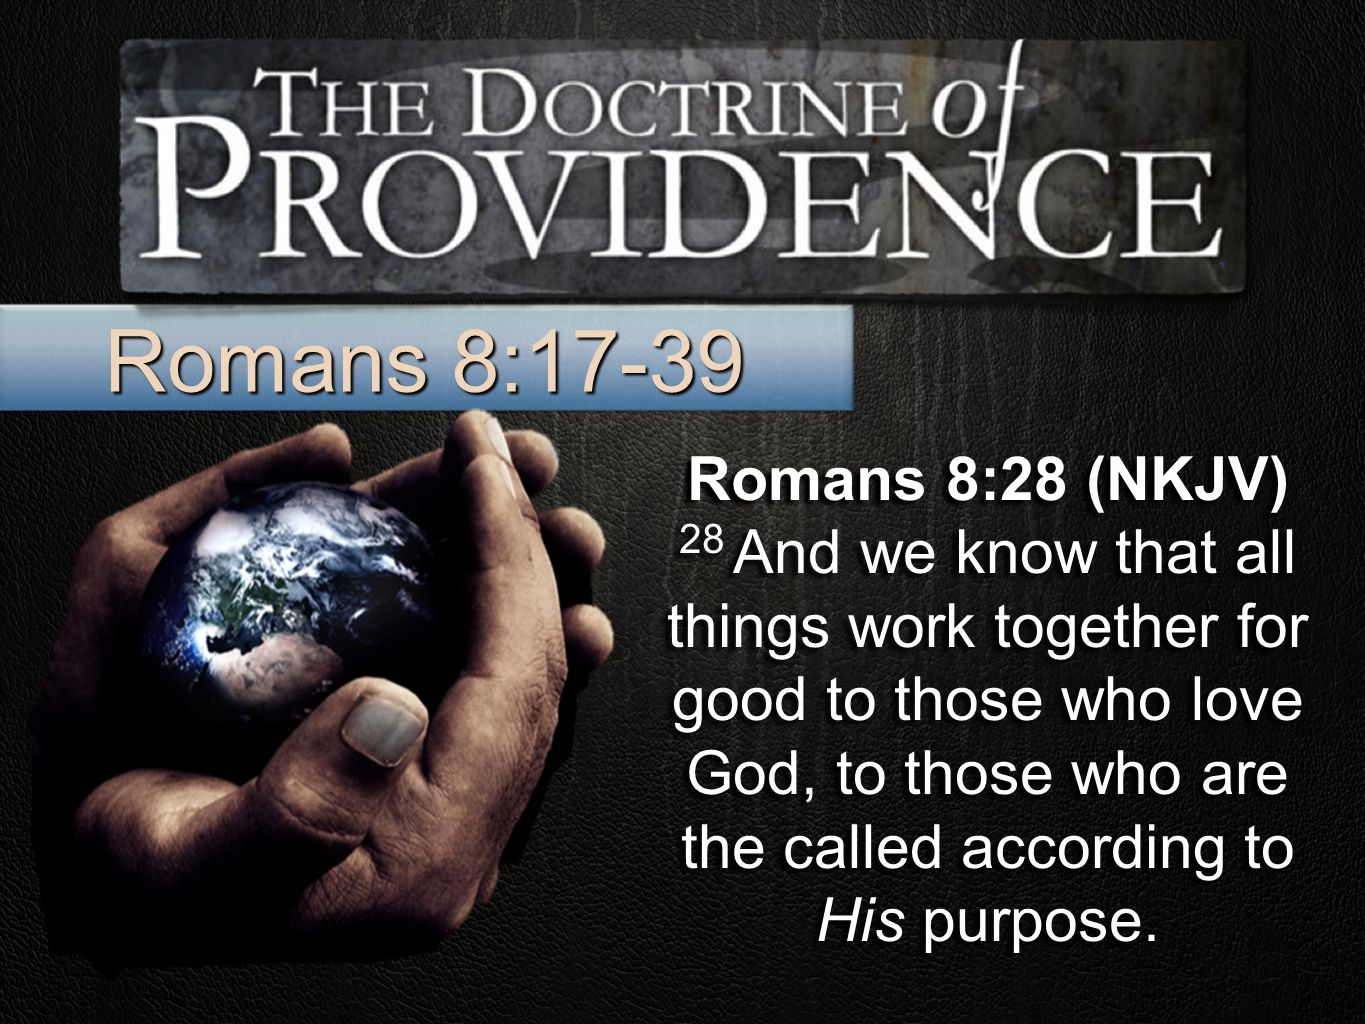 Romans 8:28 (NKJV) 28 And we know that all things work together for good to those who love God, to those who are the called according to His purpose.